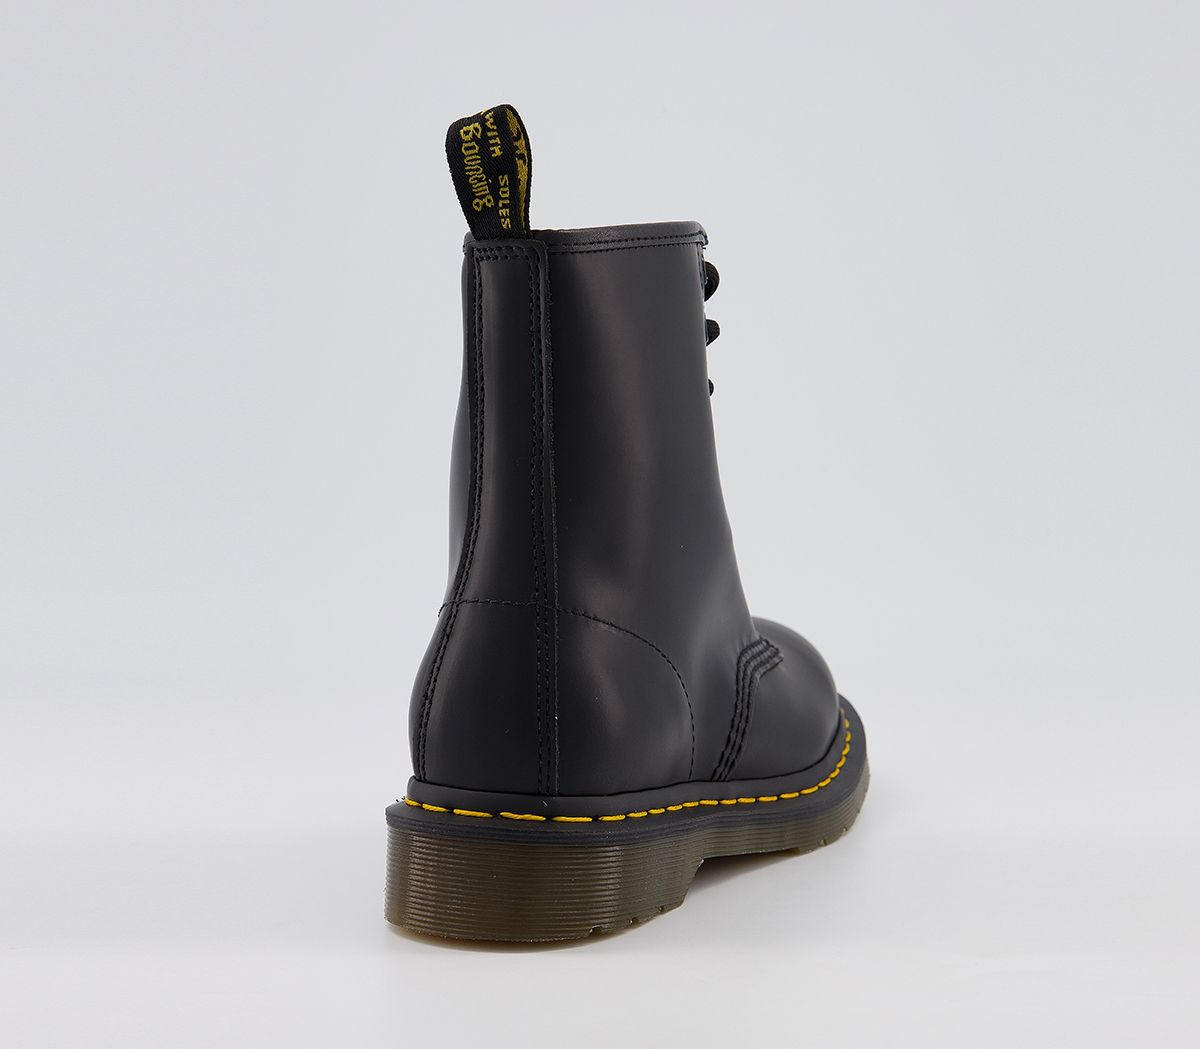 fc16a1a47a21 Dr. Martens 8 Eyelet Lace Up Boots Black - Ankle Boots